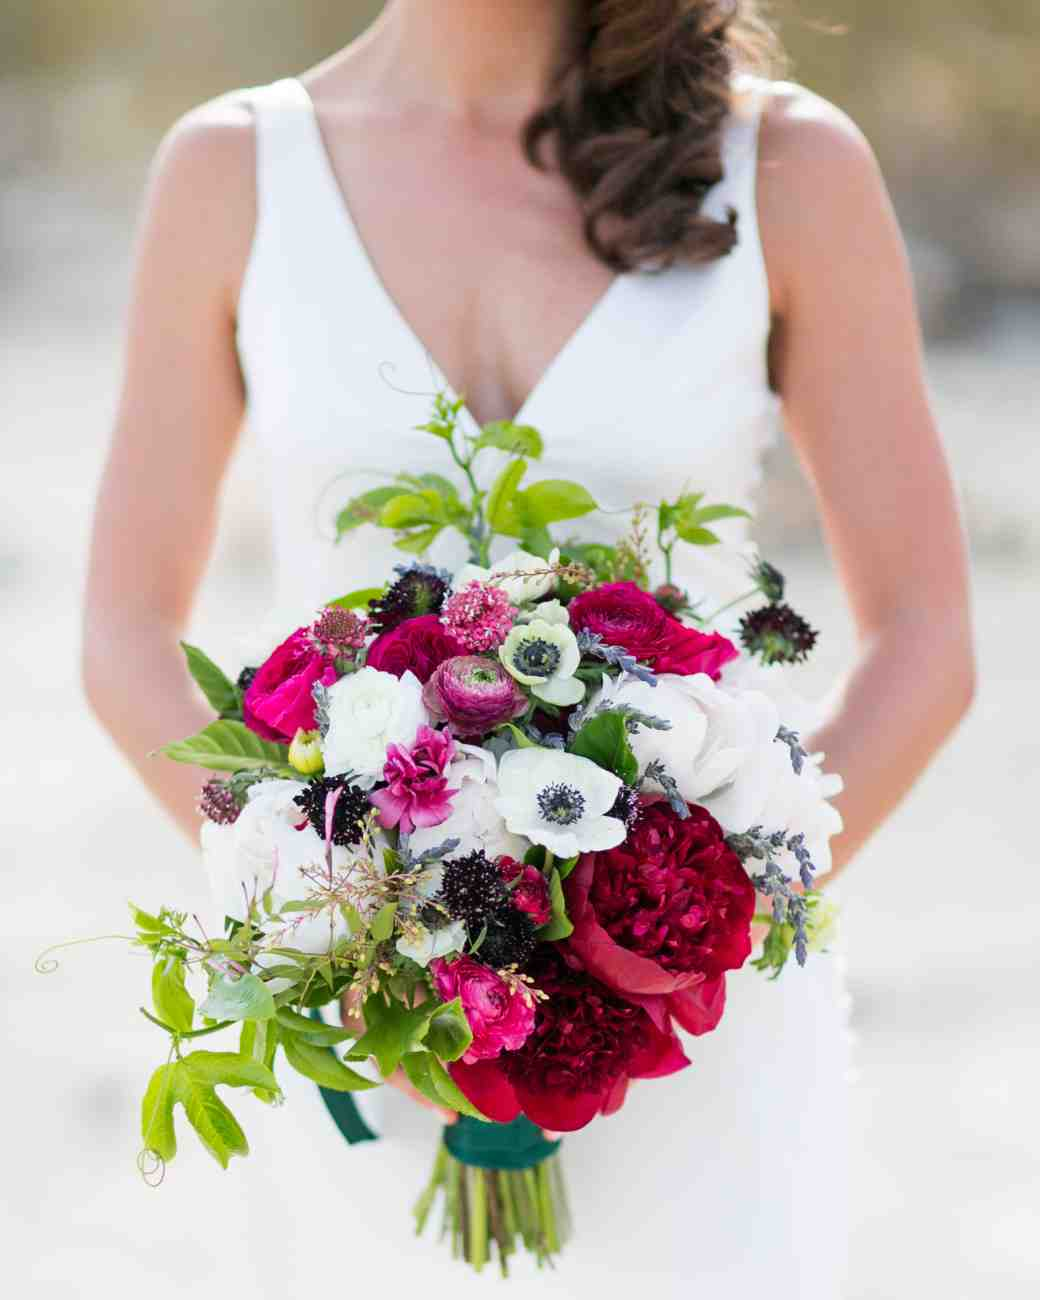 kelly_mike-wedding-bouquet-0514_vert_1.jpg